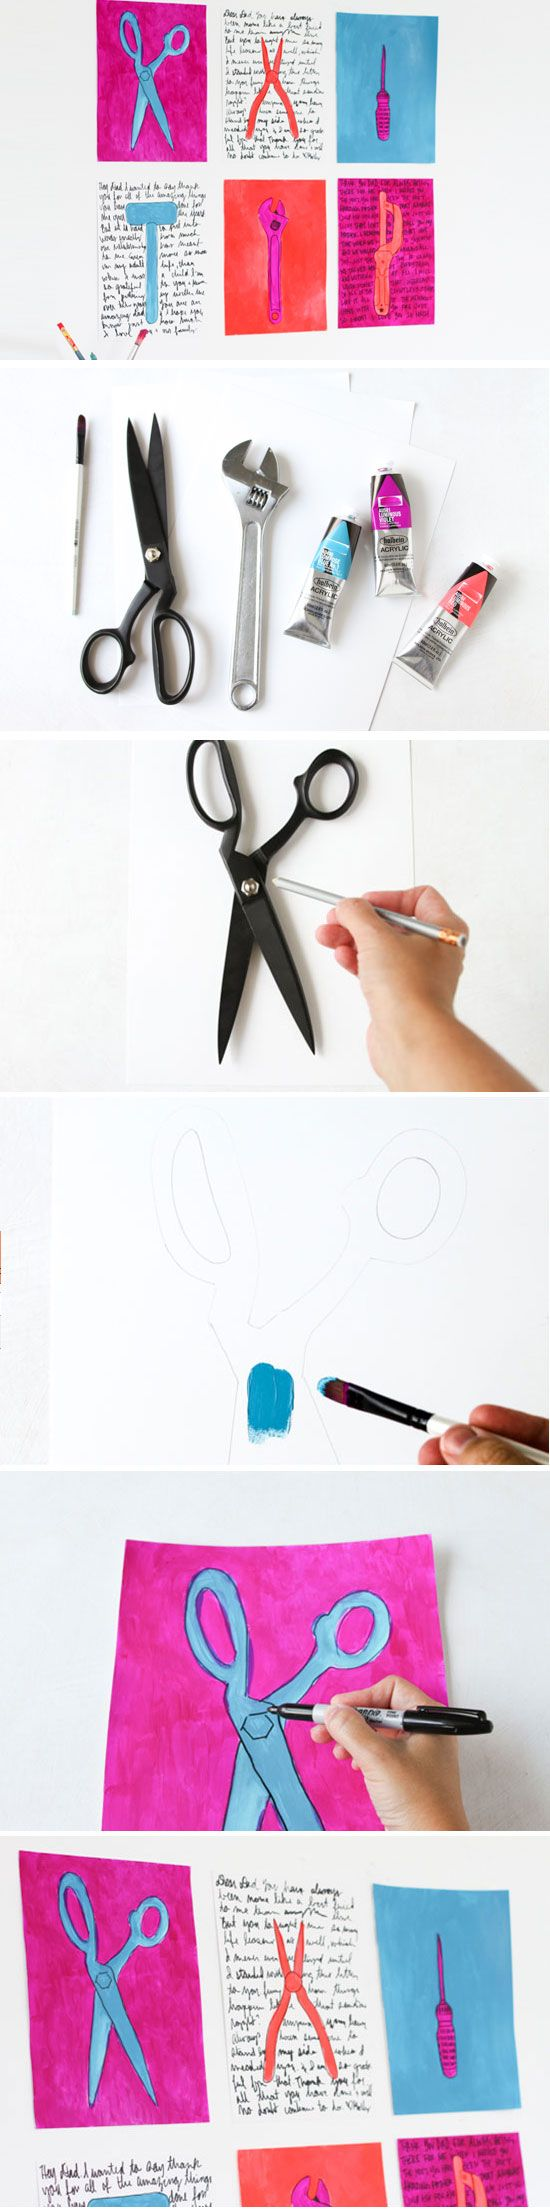 Best 71 DIY Gifts images on Pinterest | Gift ideas, Bricolage and ...